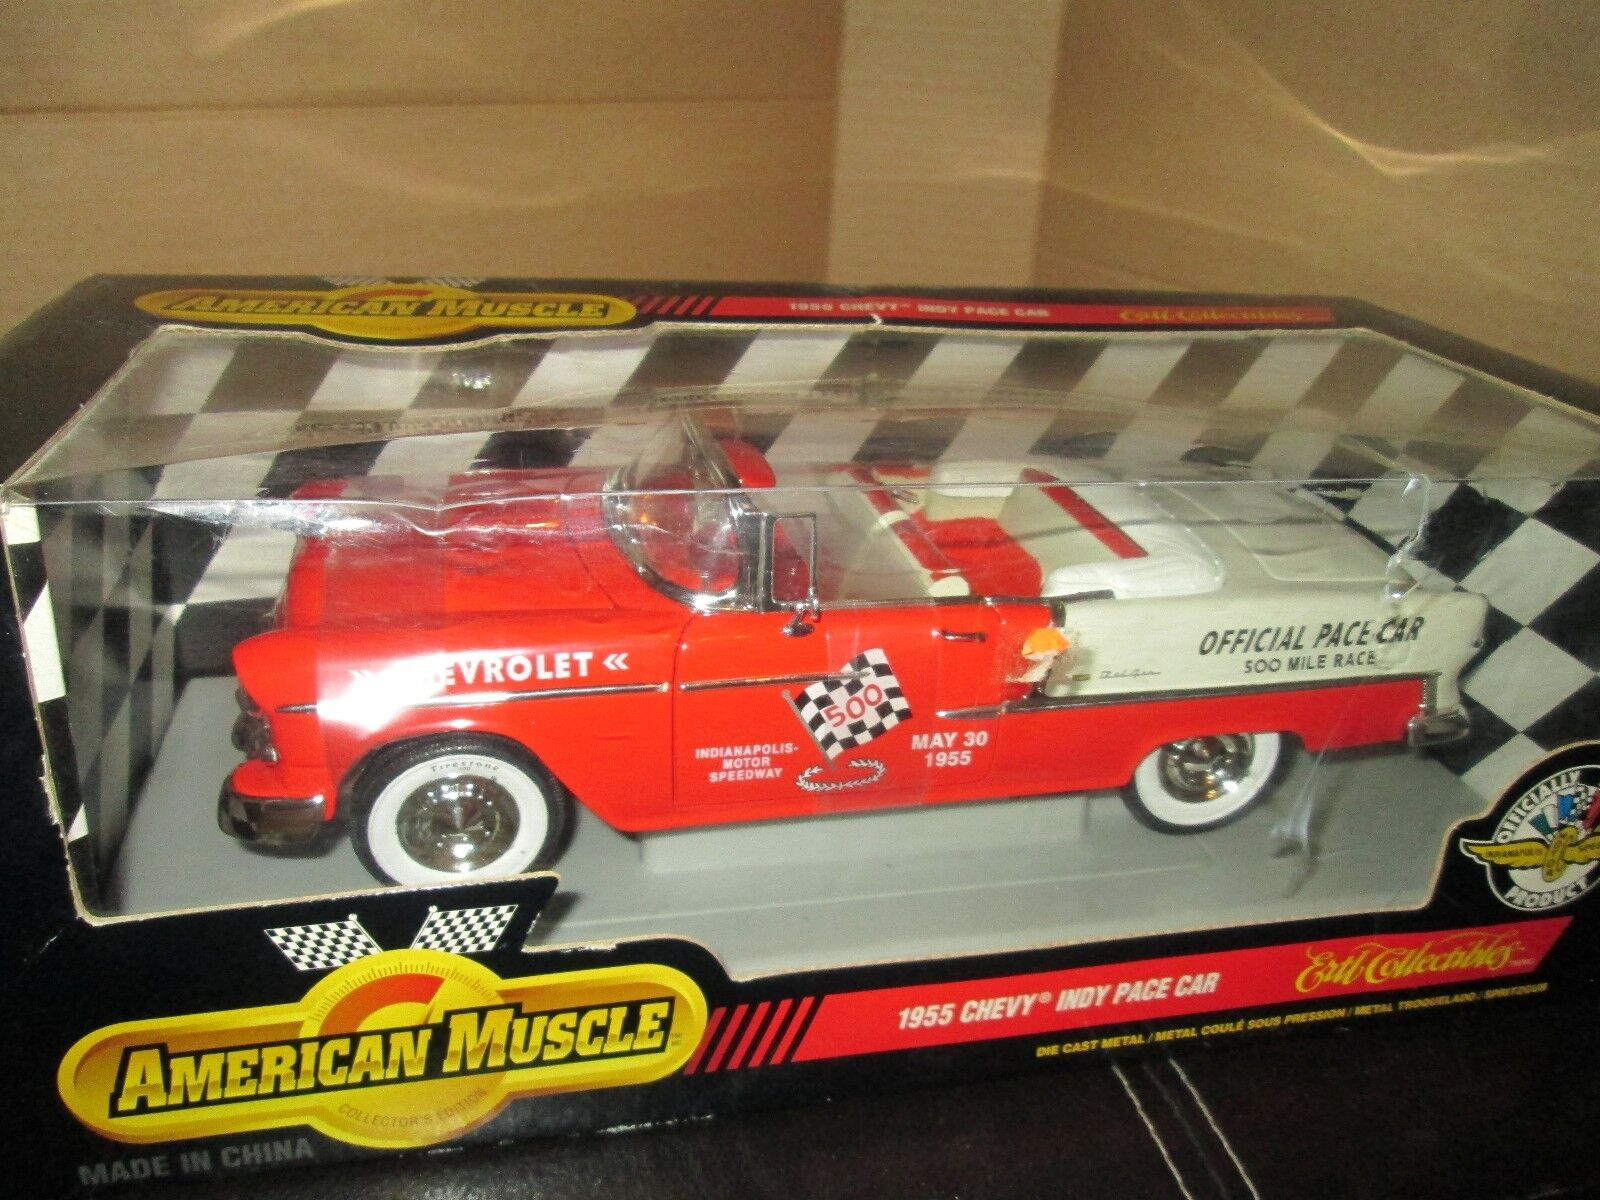 1955 belair congreenible pace car indy 500 may 30 1955 1 18 ertl american muscle